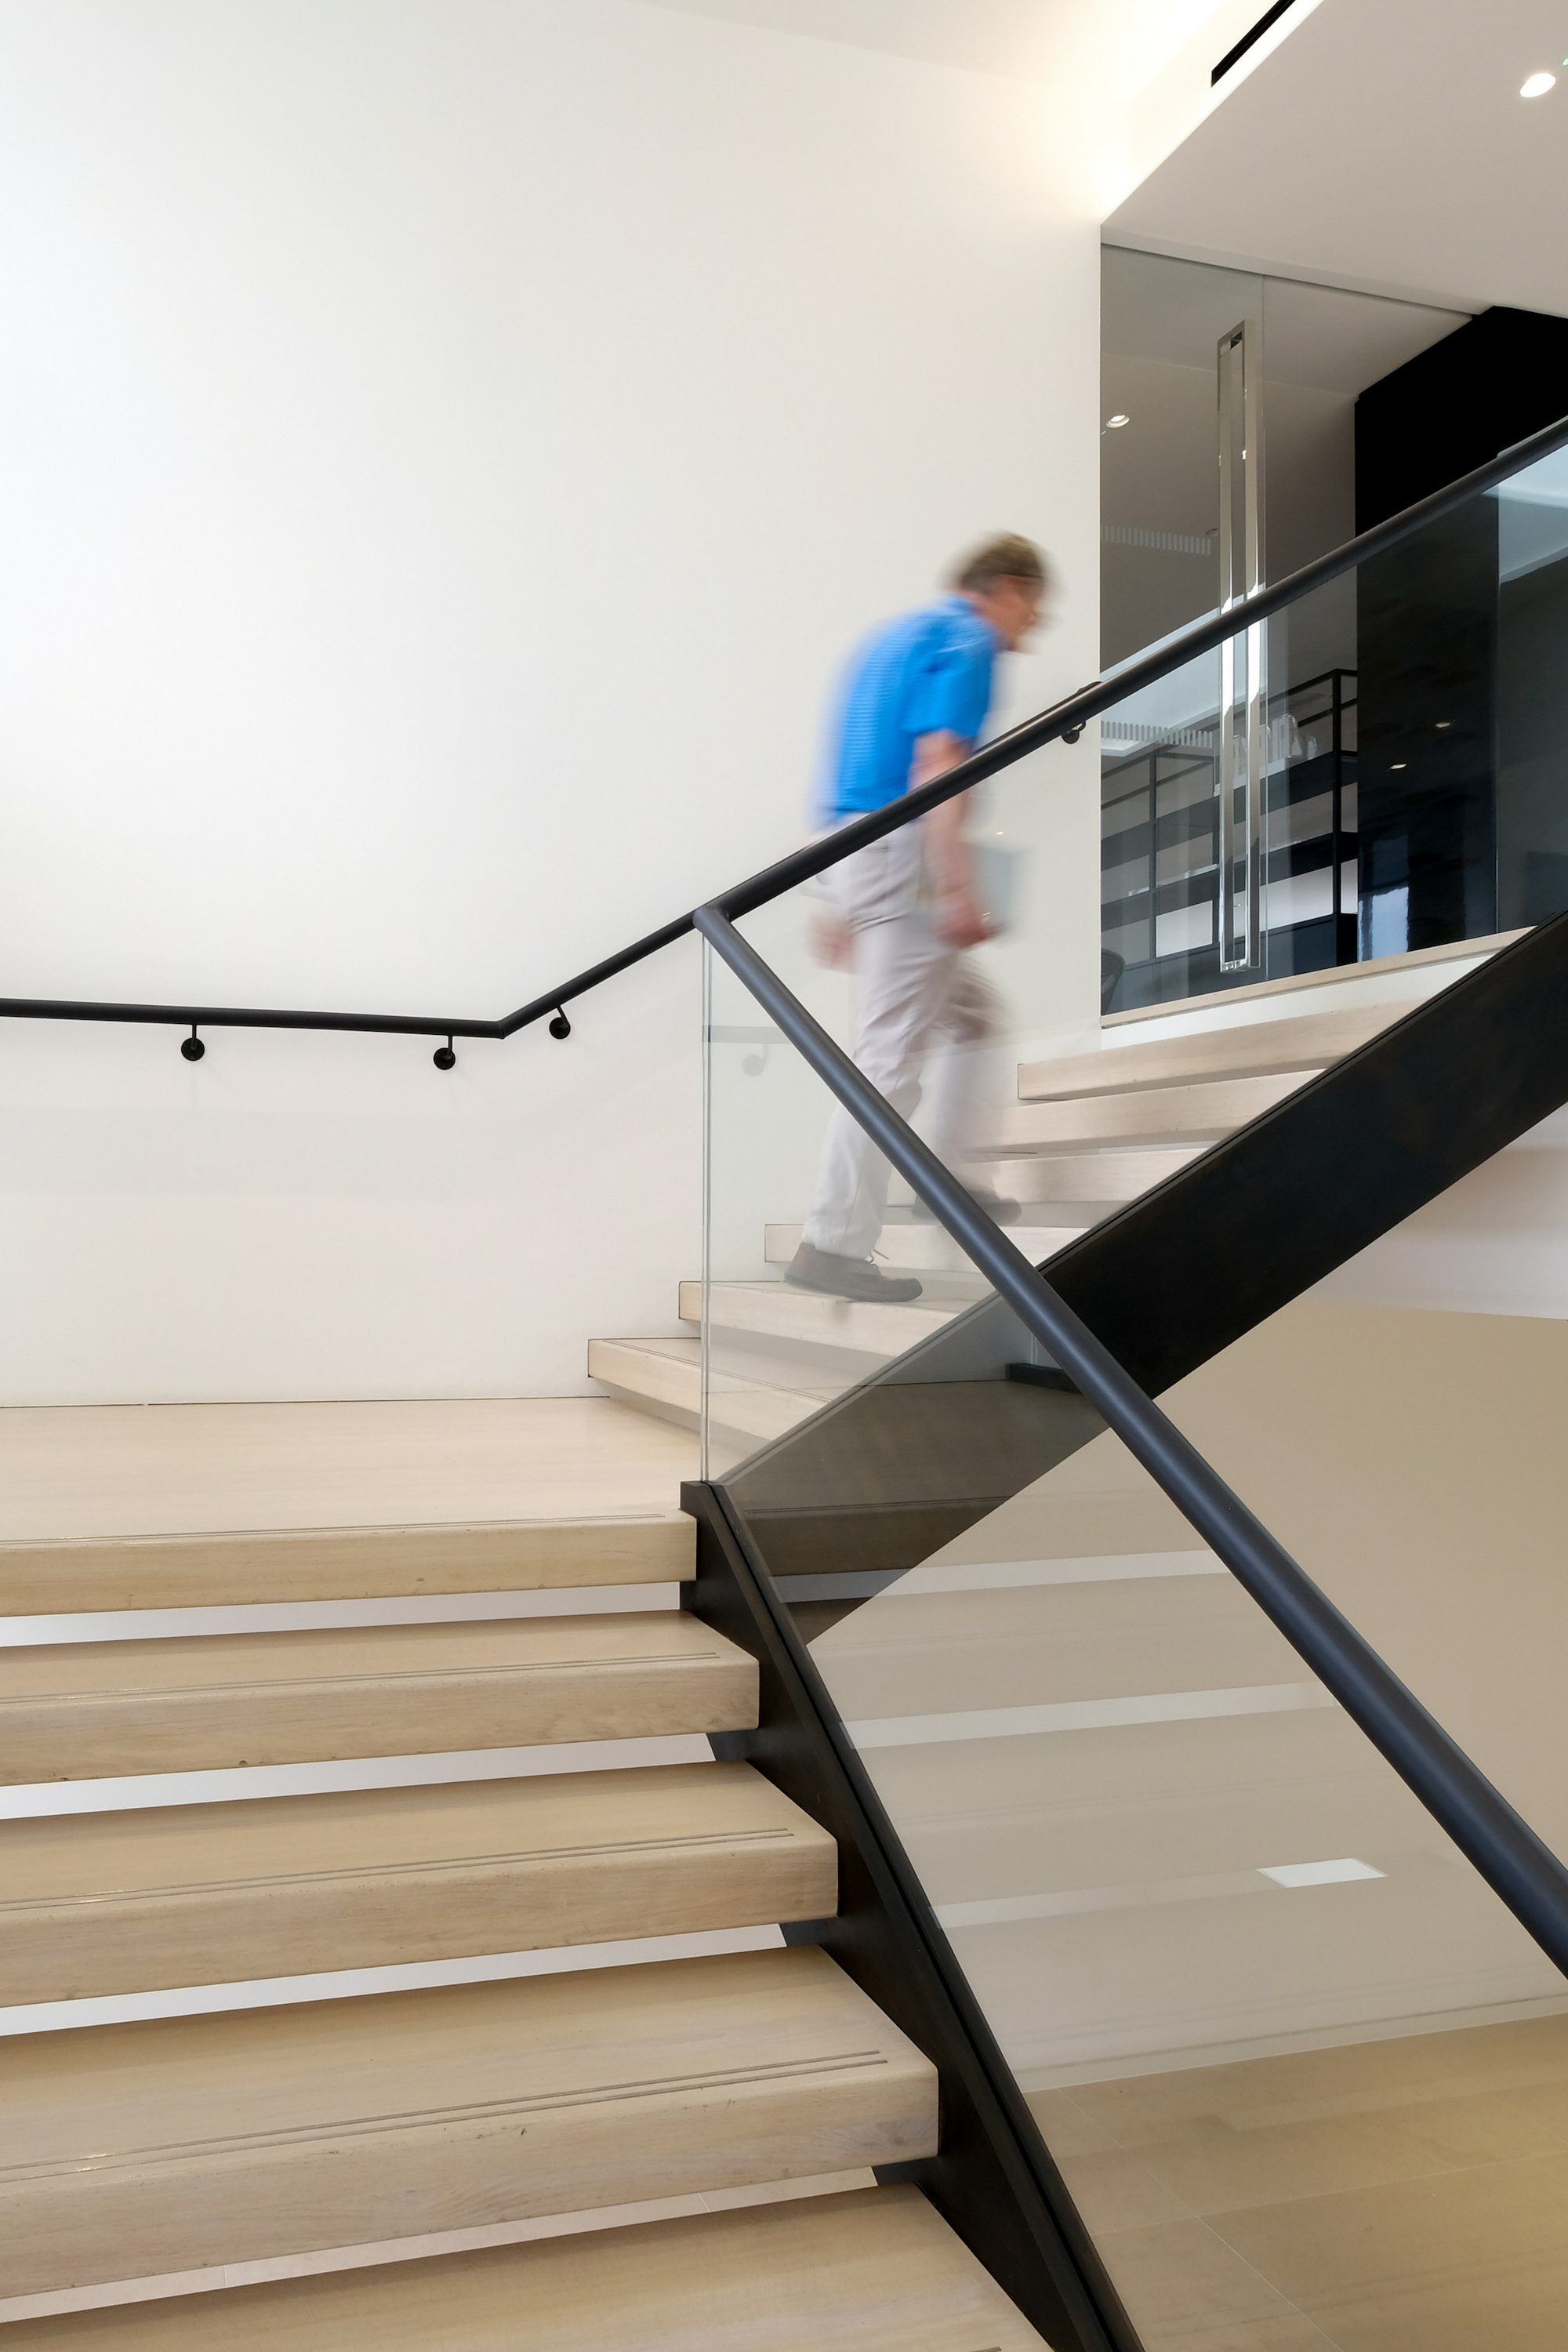 Glass balustrade on office staircase